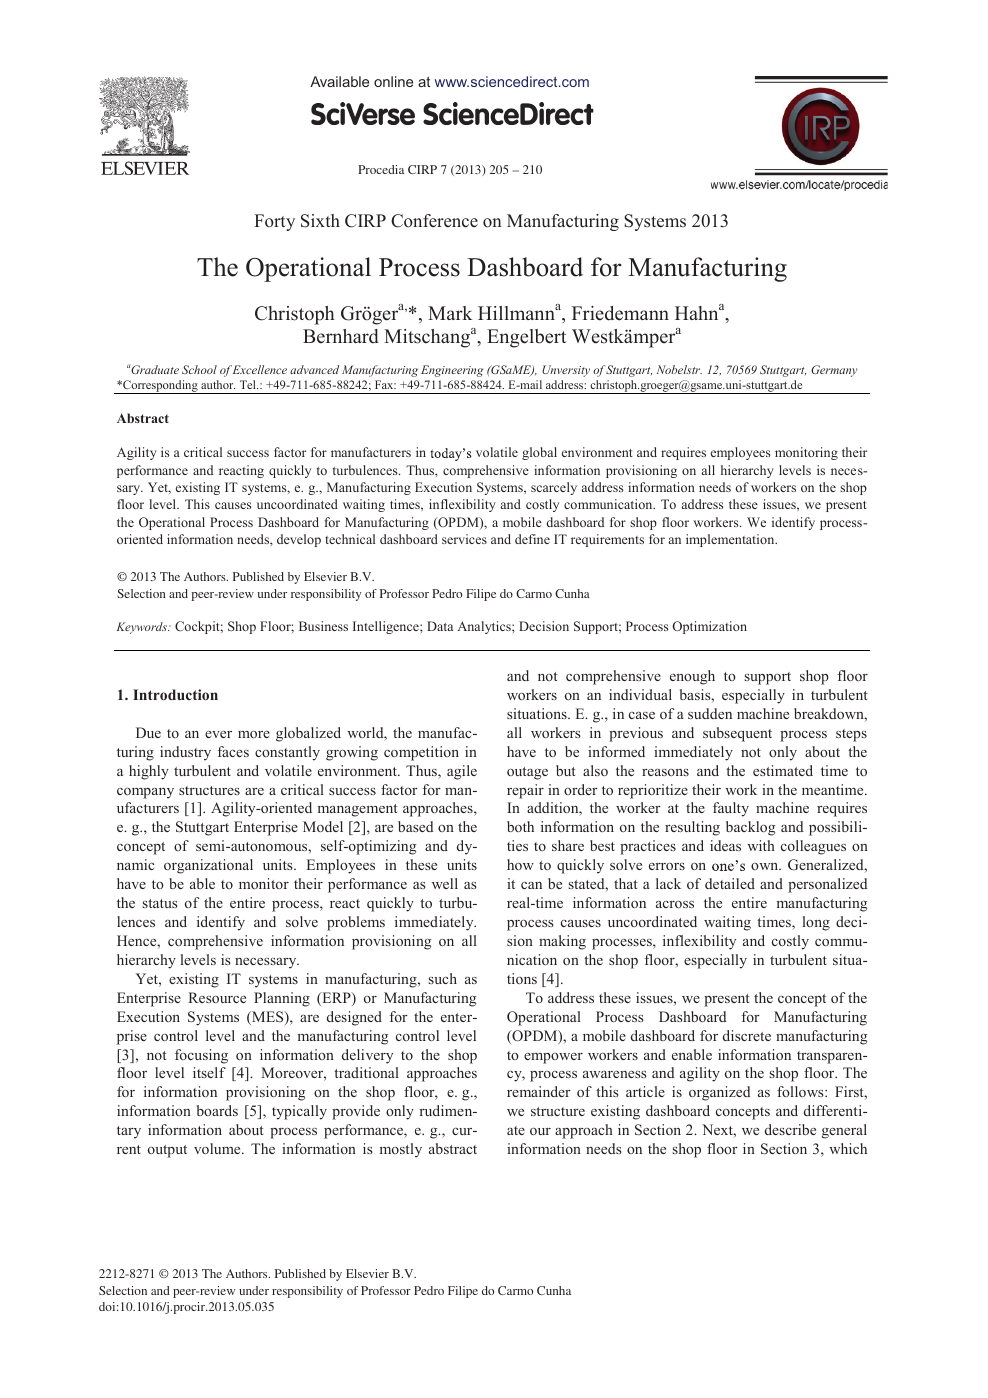 The Operational Process Dashboard for Manufacturing – topic